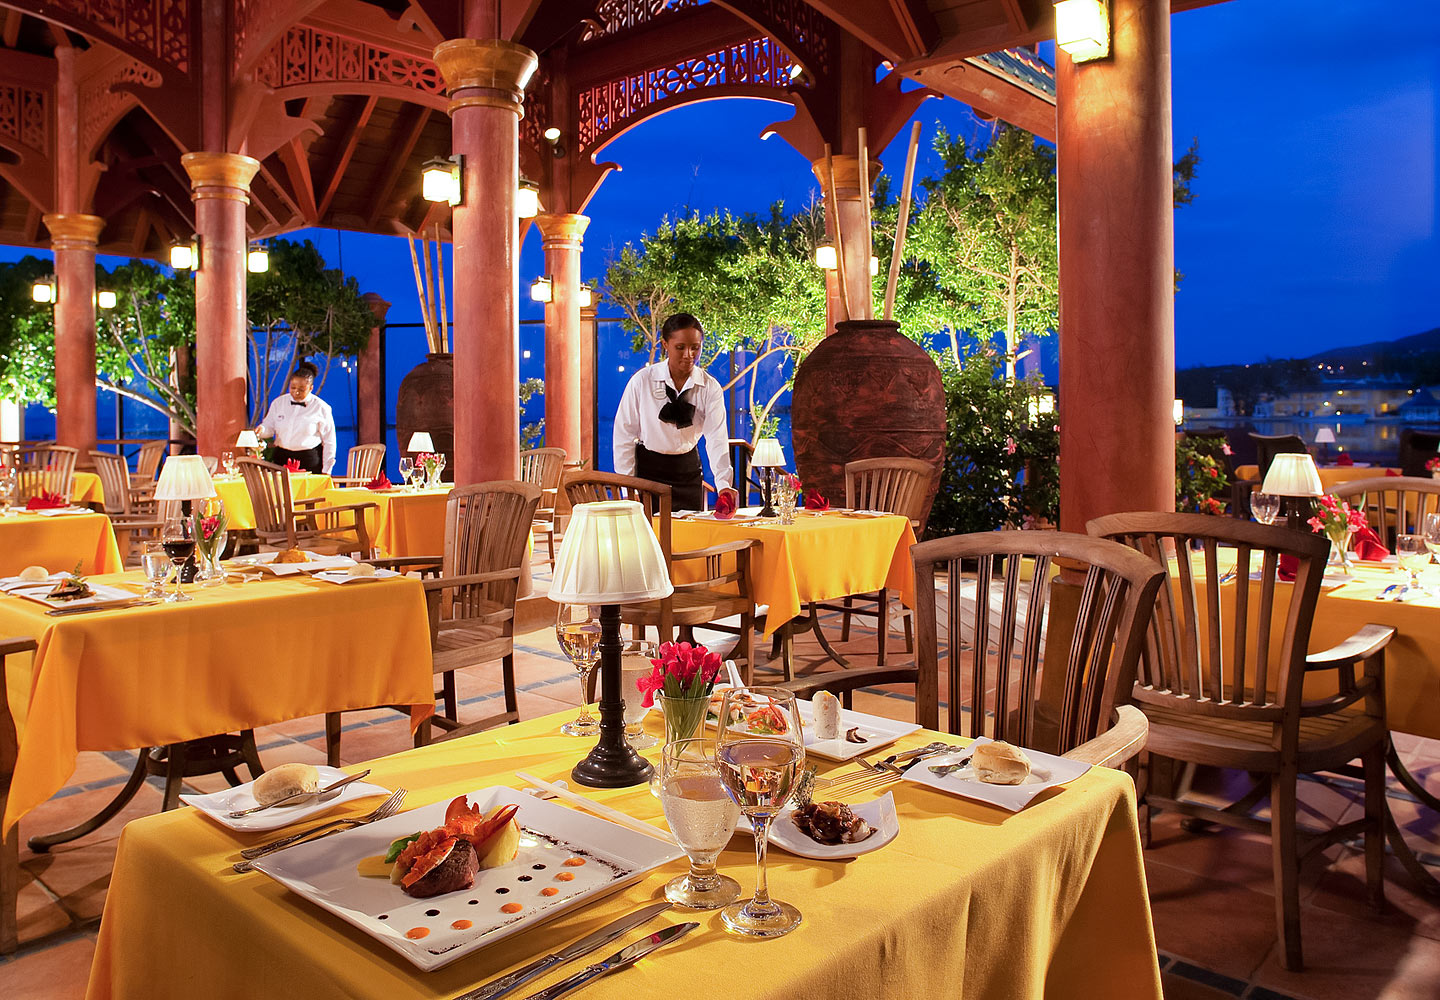 Royal Thai Dishes at Sandals Island